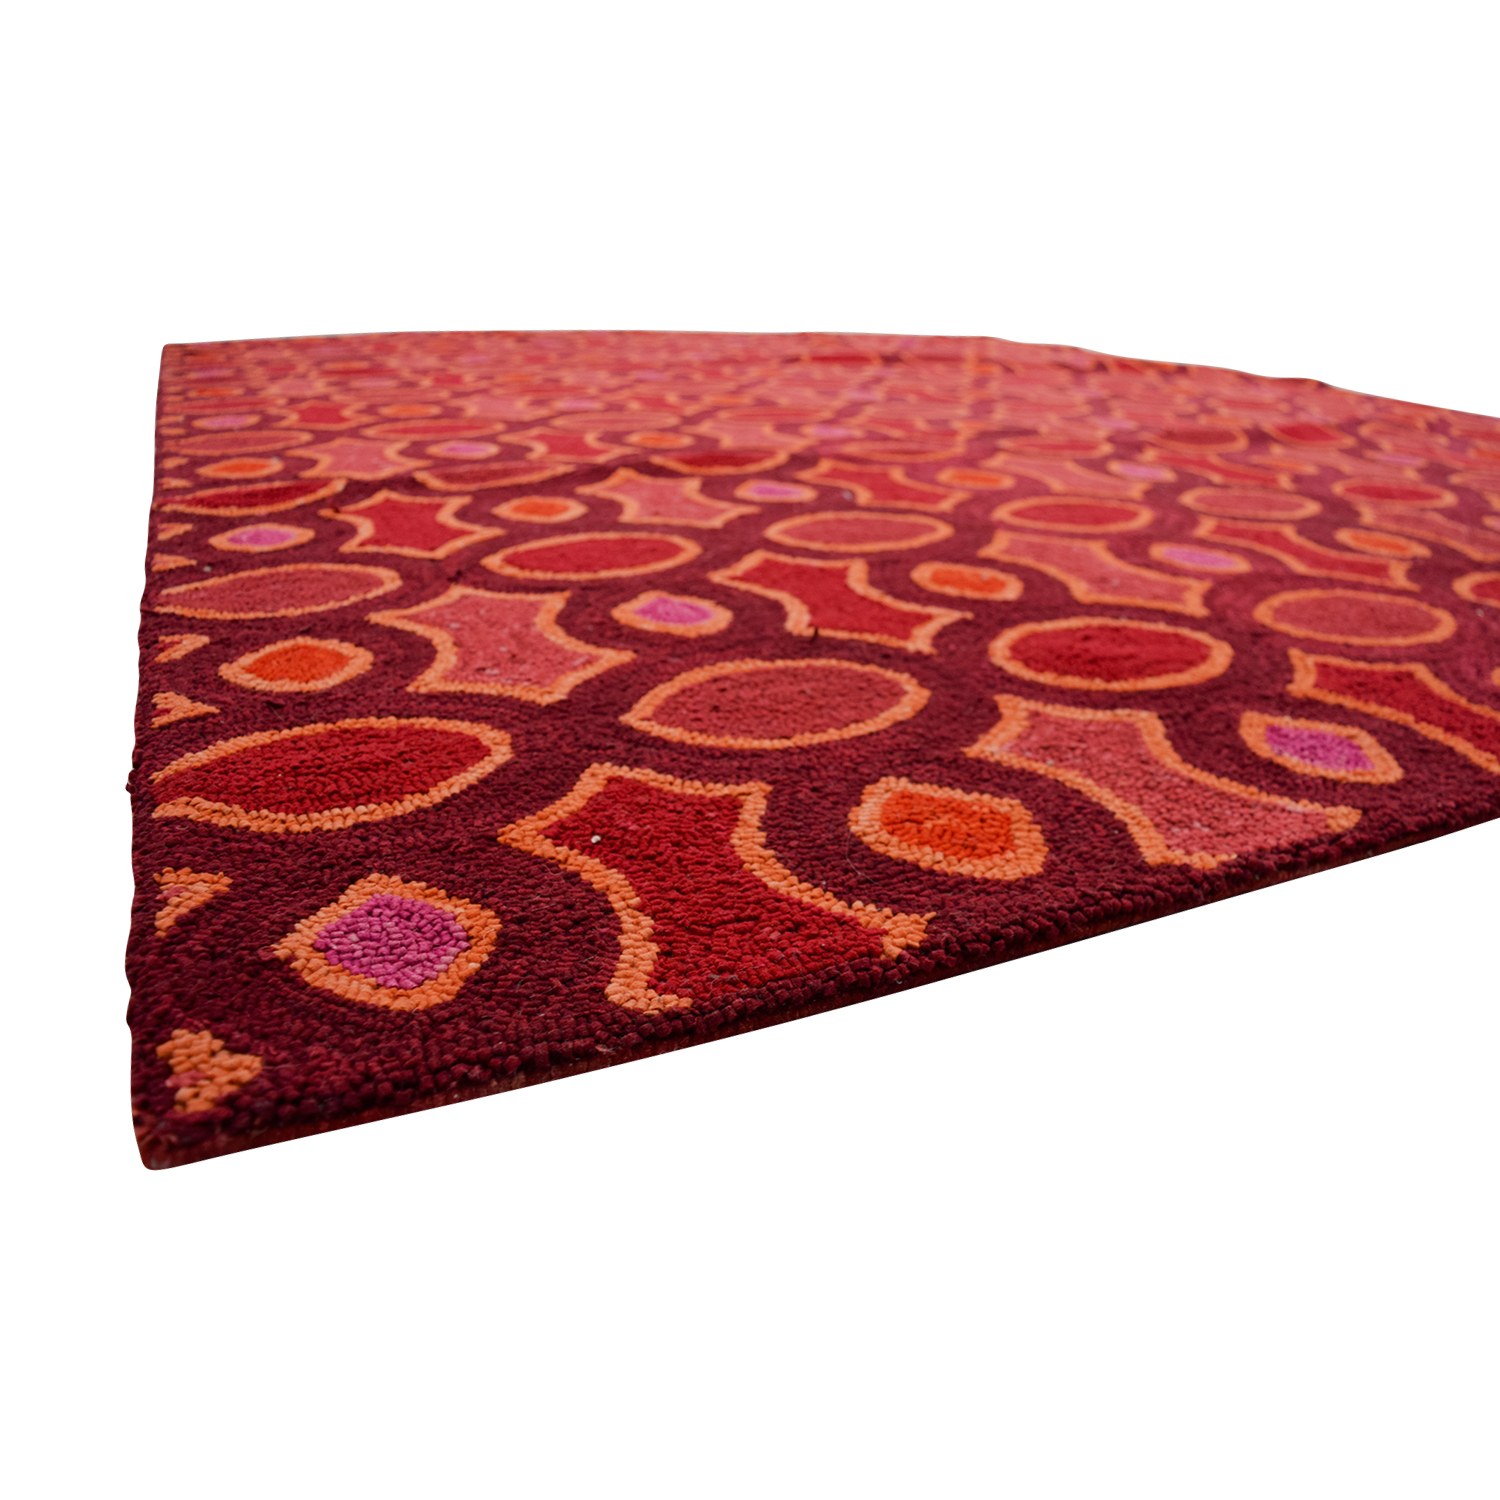 features rug pin orange primary origin turkey material color construction machine made technique polypropylene modern g woven collection jax style rugs pile burnt medium